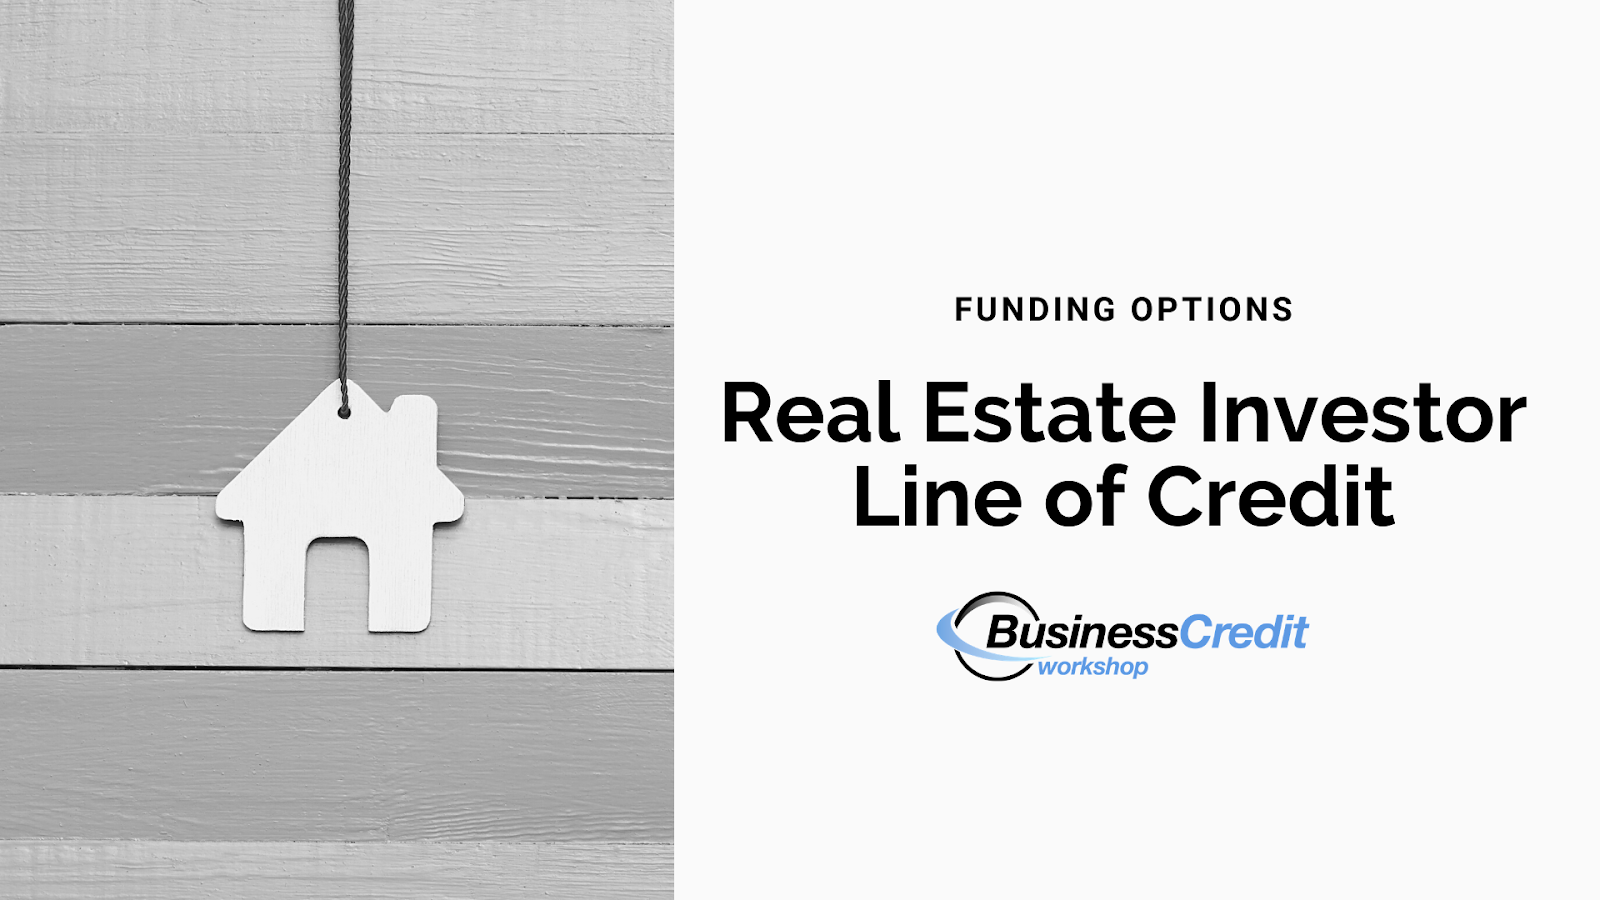 Real Estate Investor Line of Credit